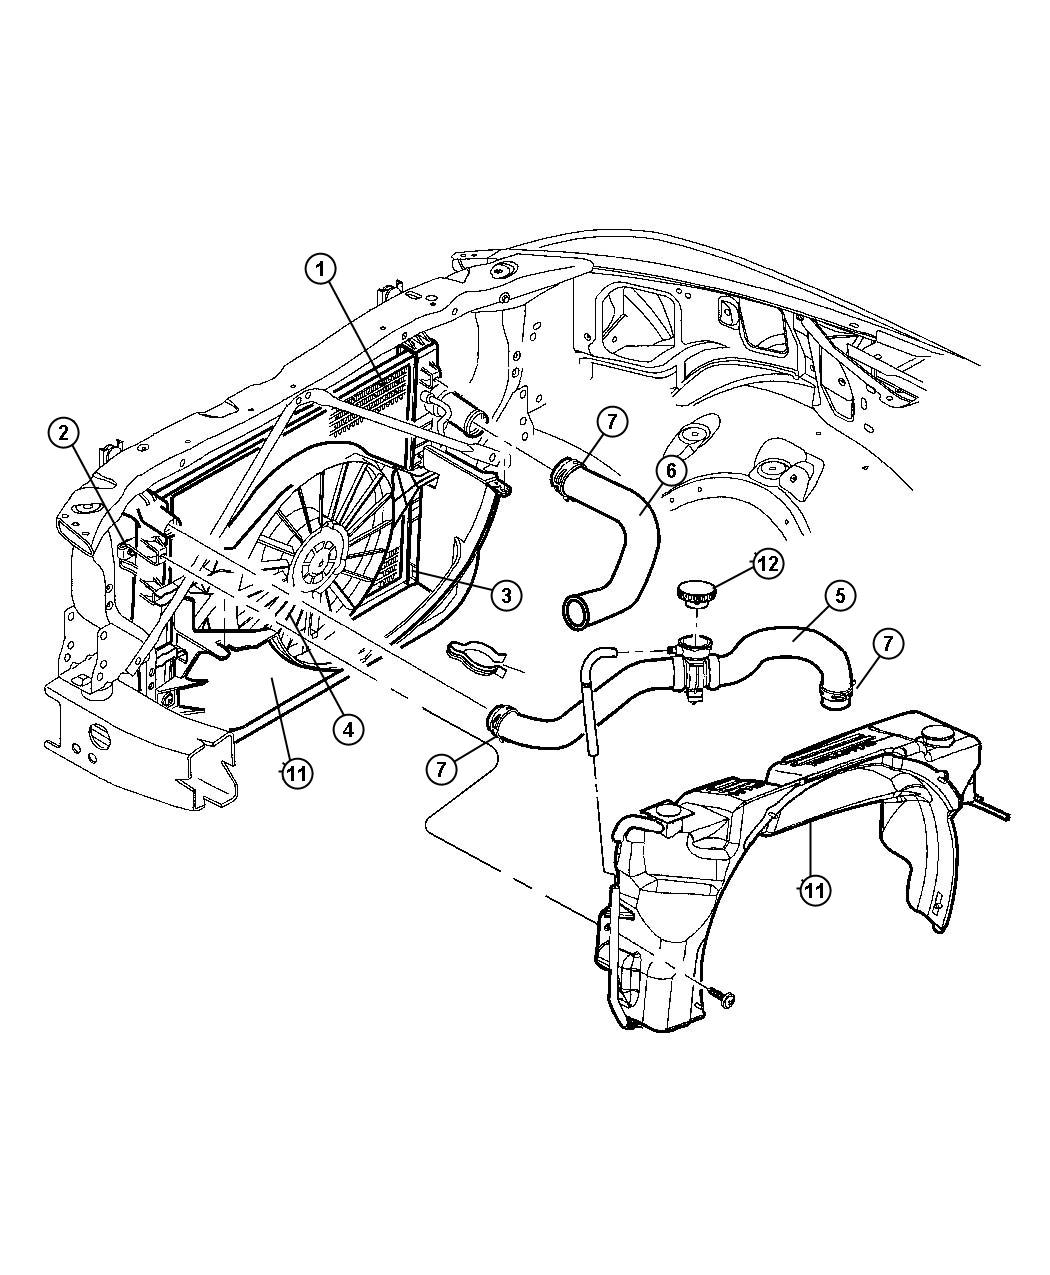 Dodge Durango Radiator And Related Parts 4 7l Engine